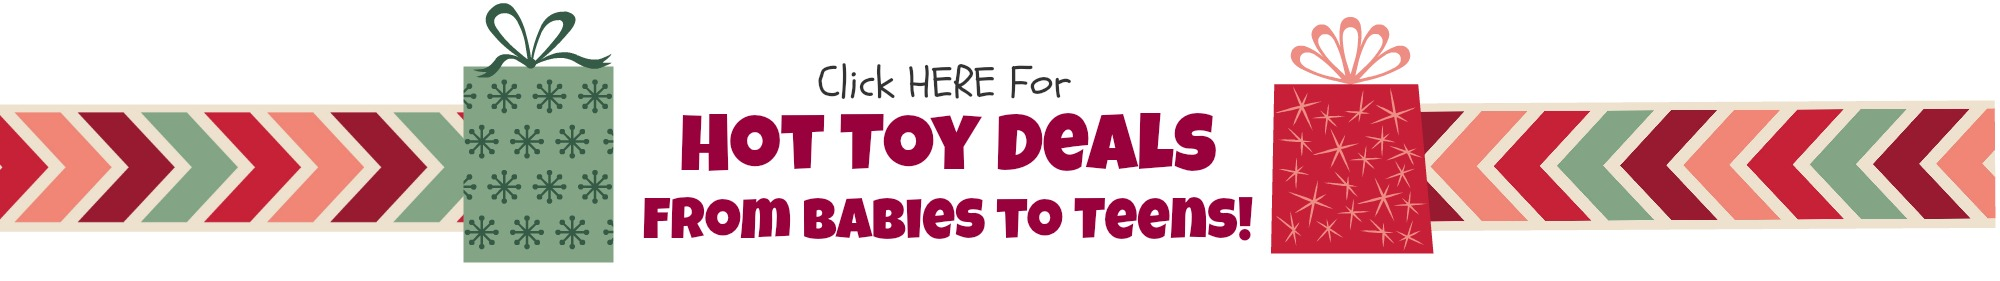 Click Here Hot Toy Deals